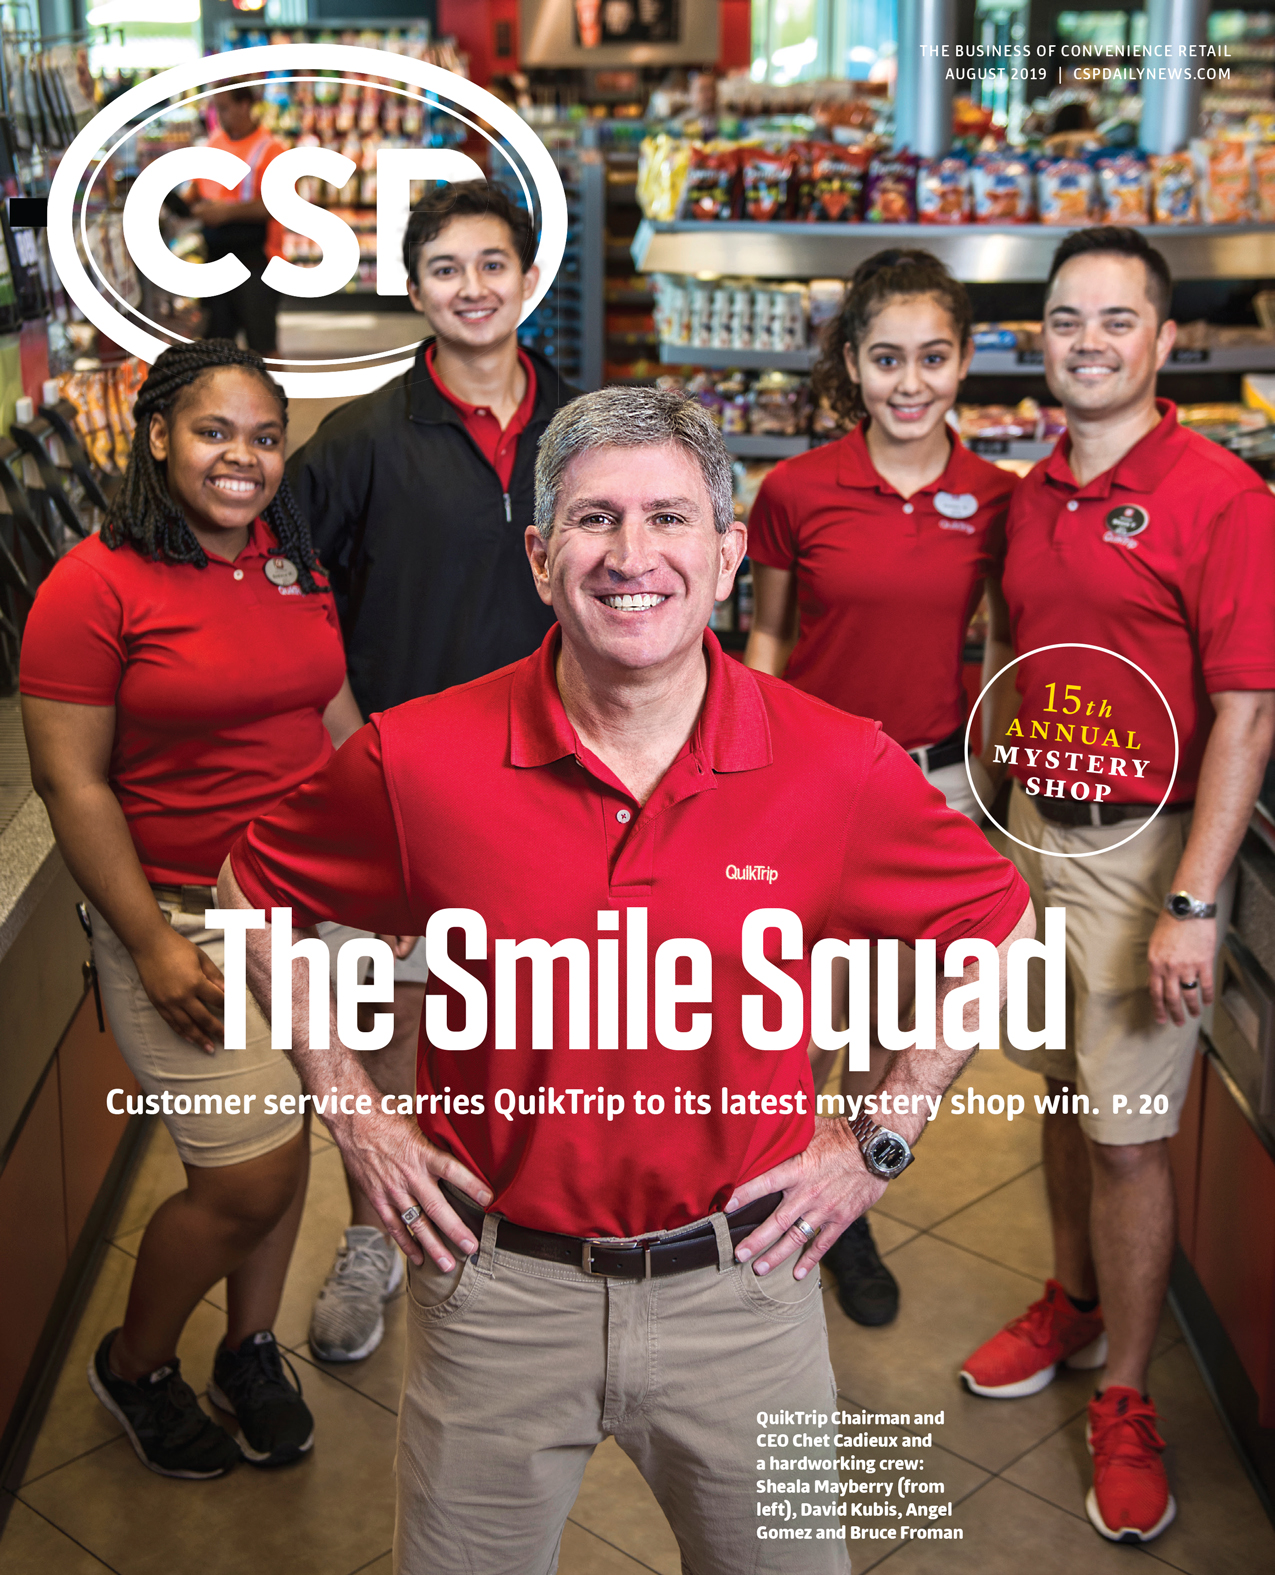 CSP Daily News Magazine August 2019 Issue